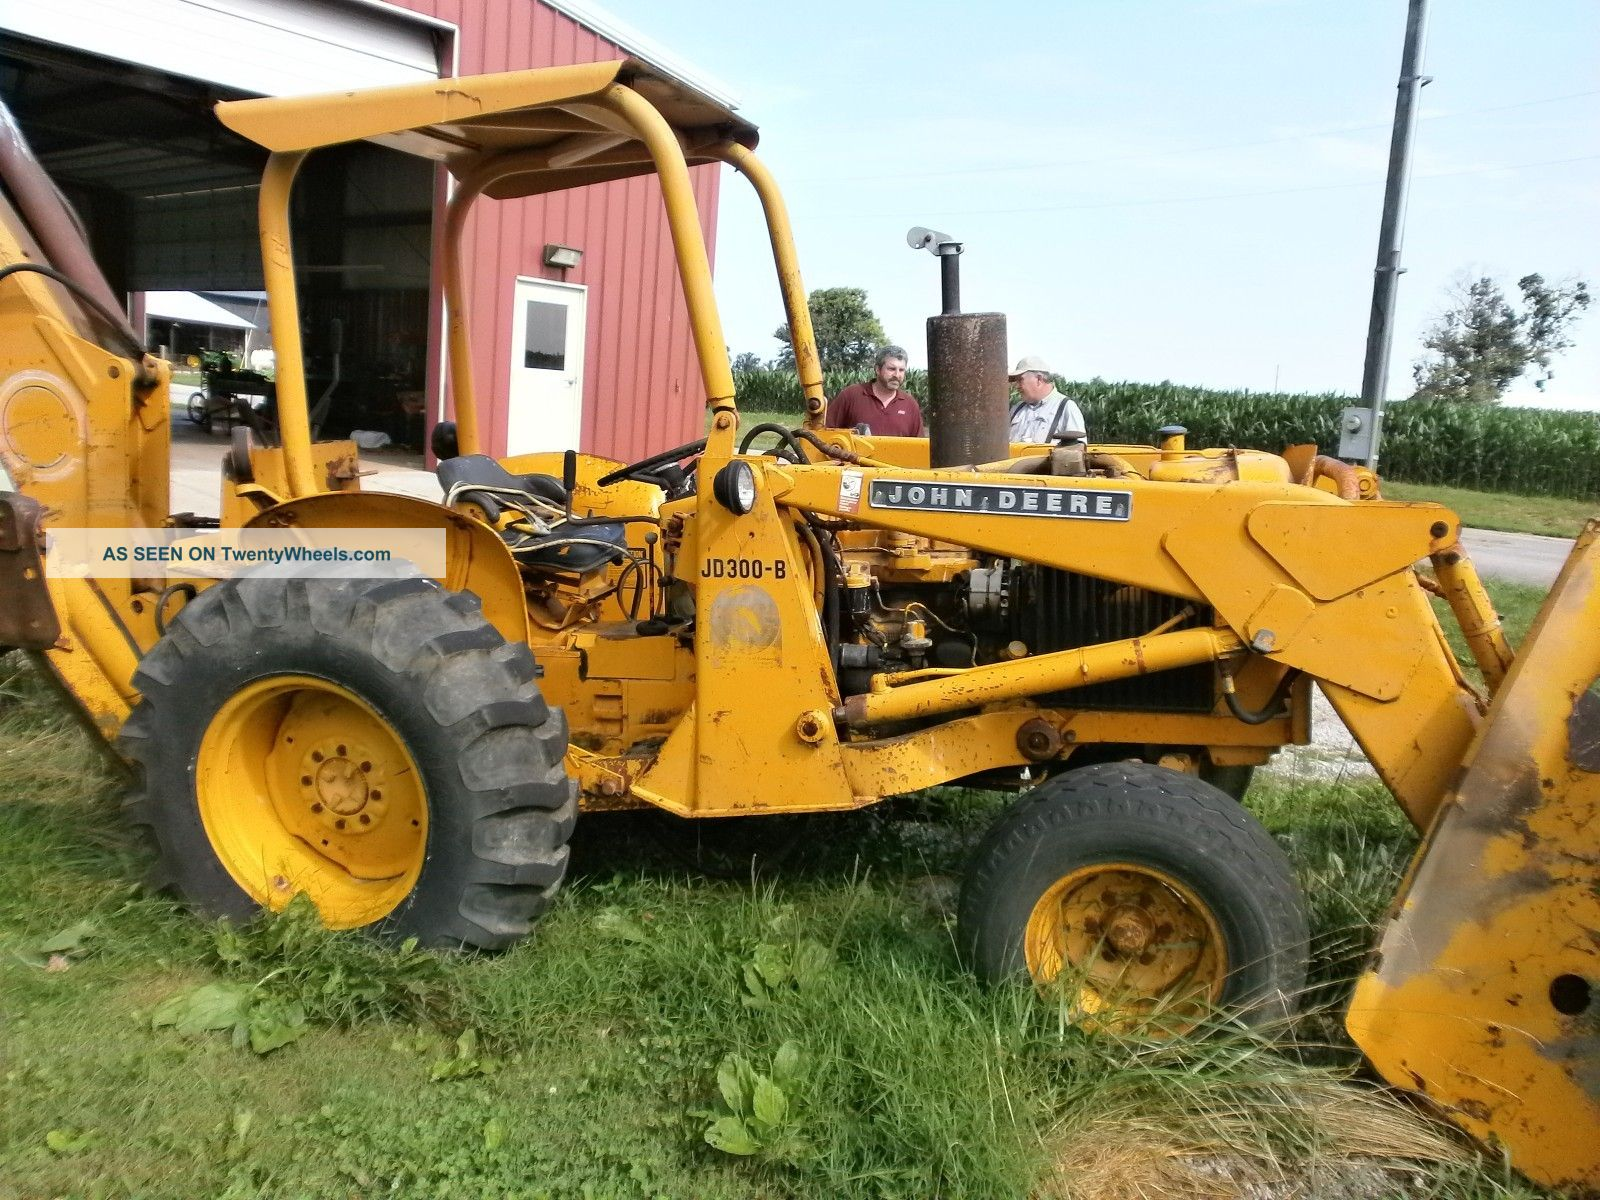 John Deere Jd - 300 - B Backhoe (farm - 3521)